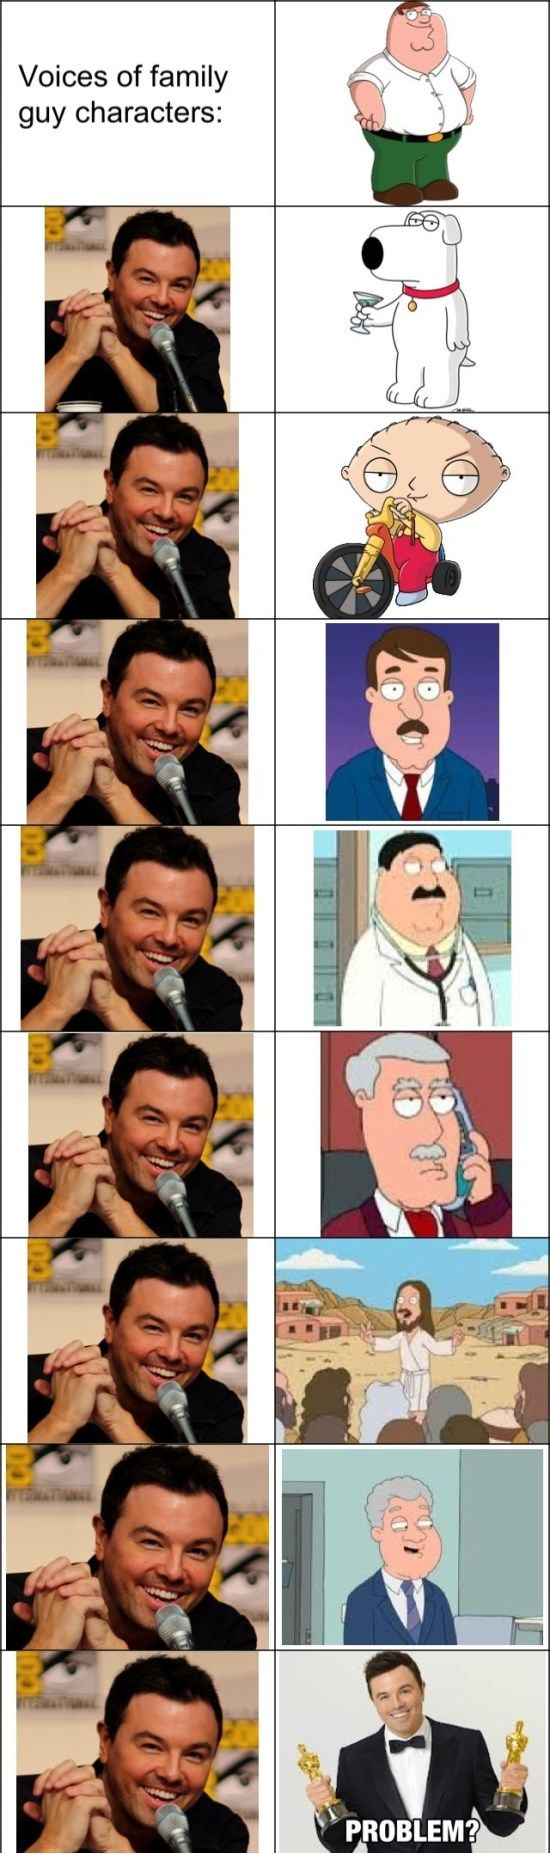 Voices of family guy characters - www.meme-lol.com